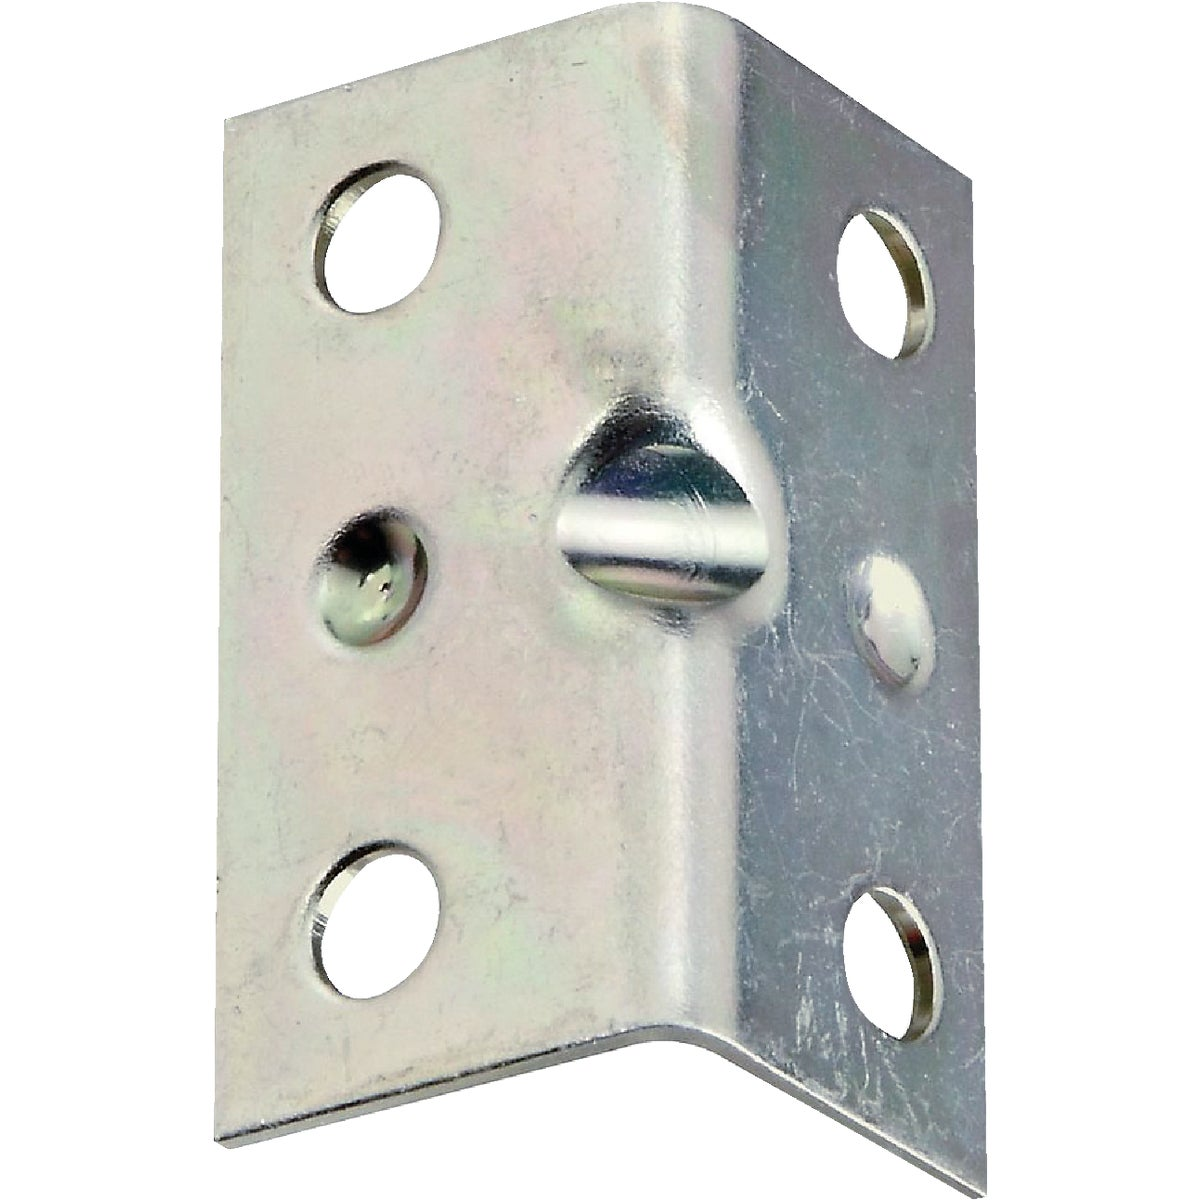 1-1/2X3/4 CORNER BRACE - N206920 by National Mfg Co